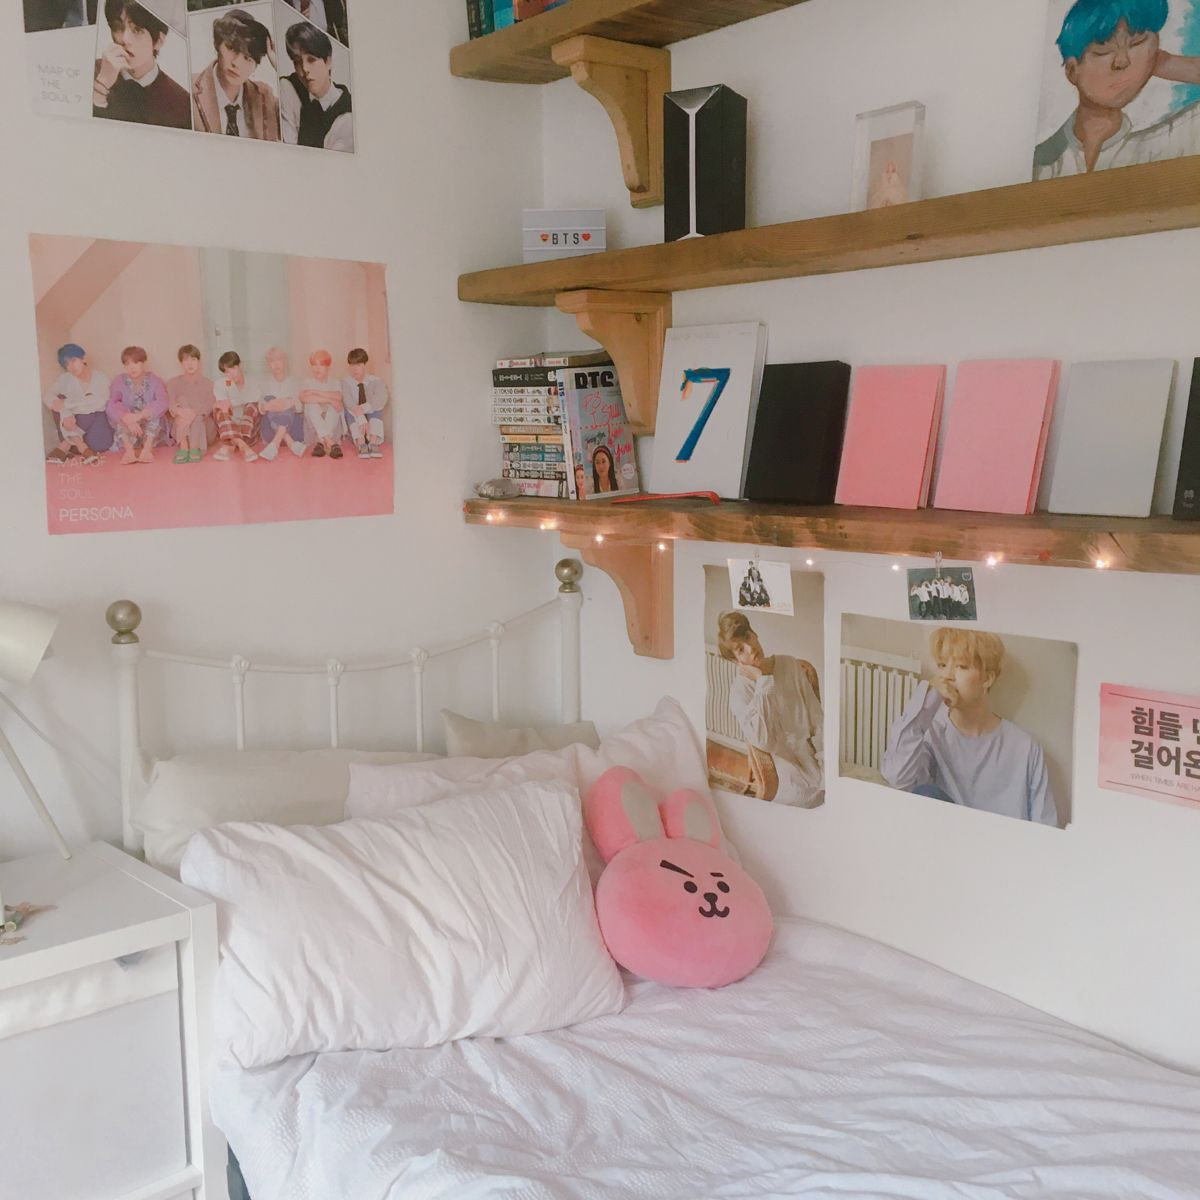 Bts Kpop Bedroom Room Ideas Bedroom Army Room Decor Aesthetic Bedroom